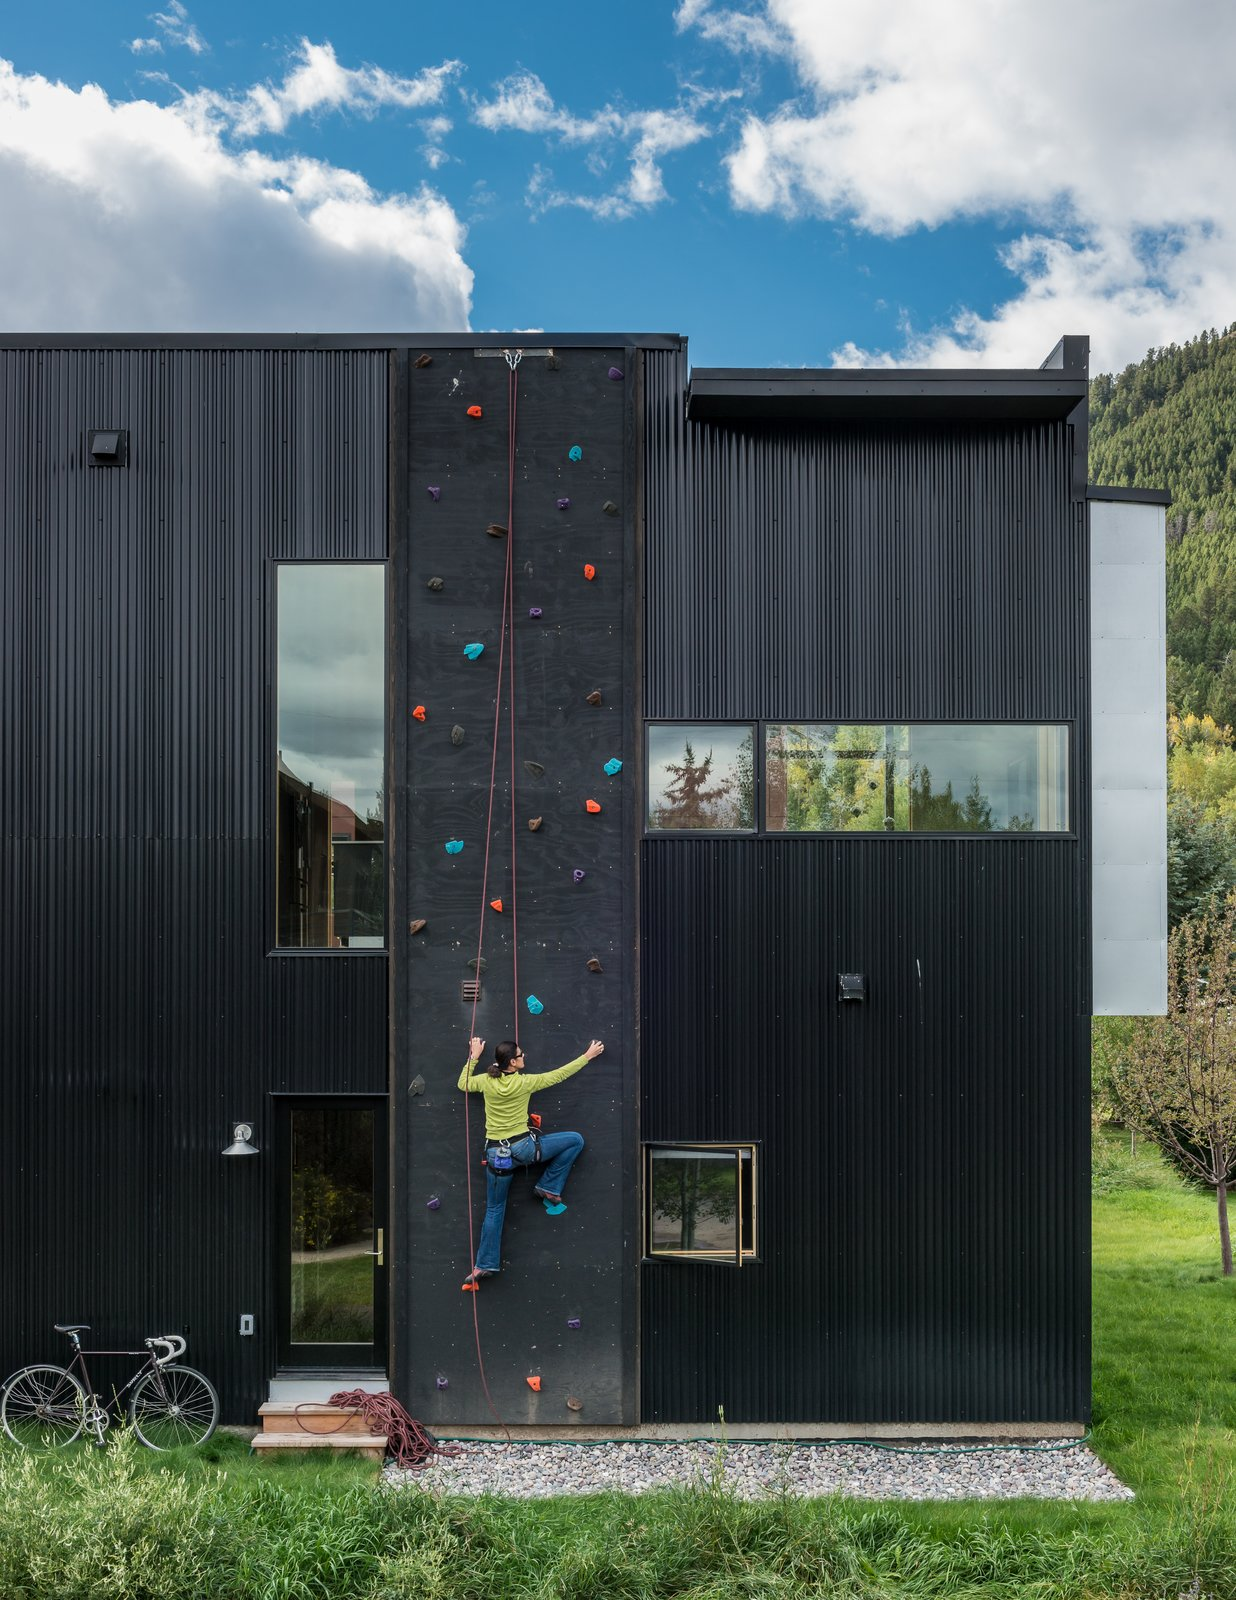 A Fun, Cost-Conscious Home With Bright Interiors and a Climbing Wall